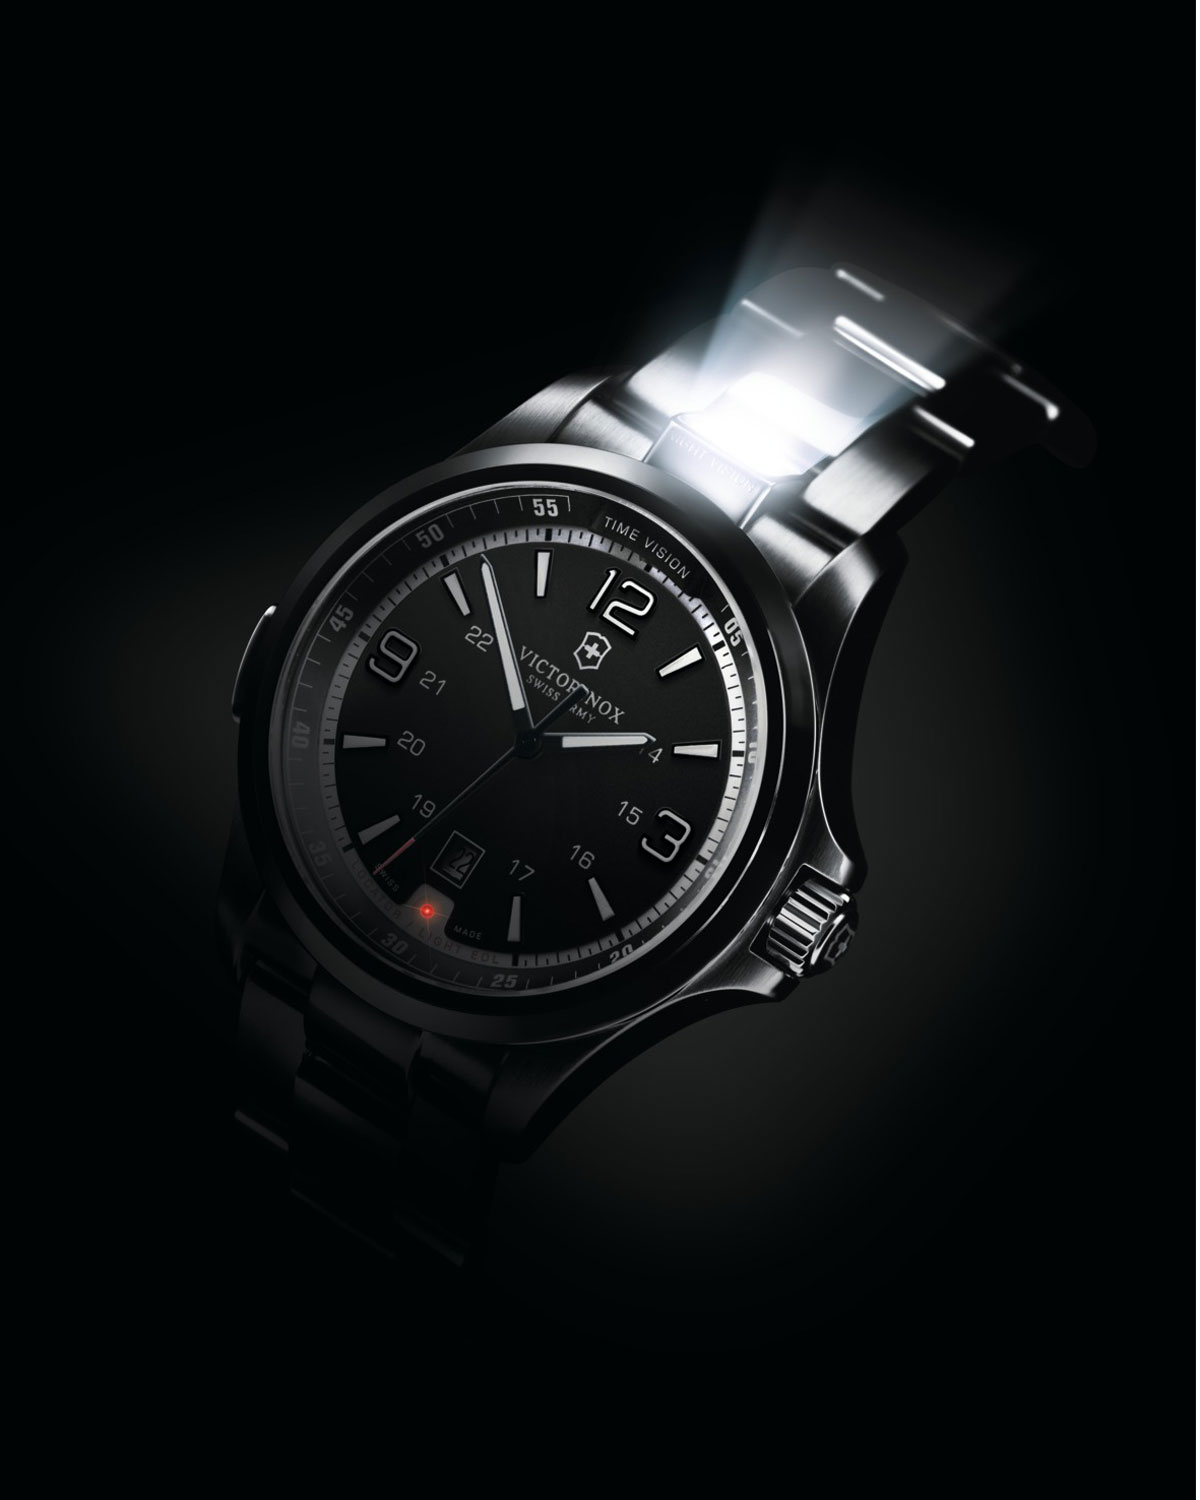 Victorinox Night Vision Led Watch in Gray